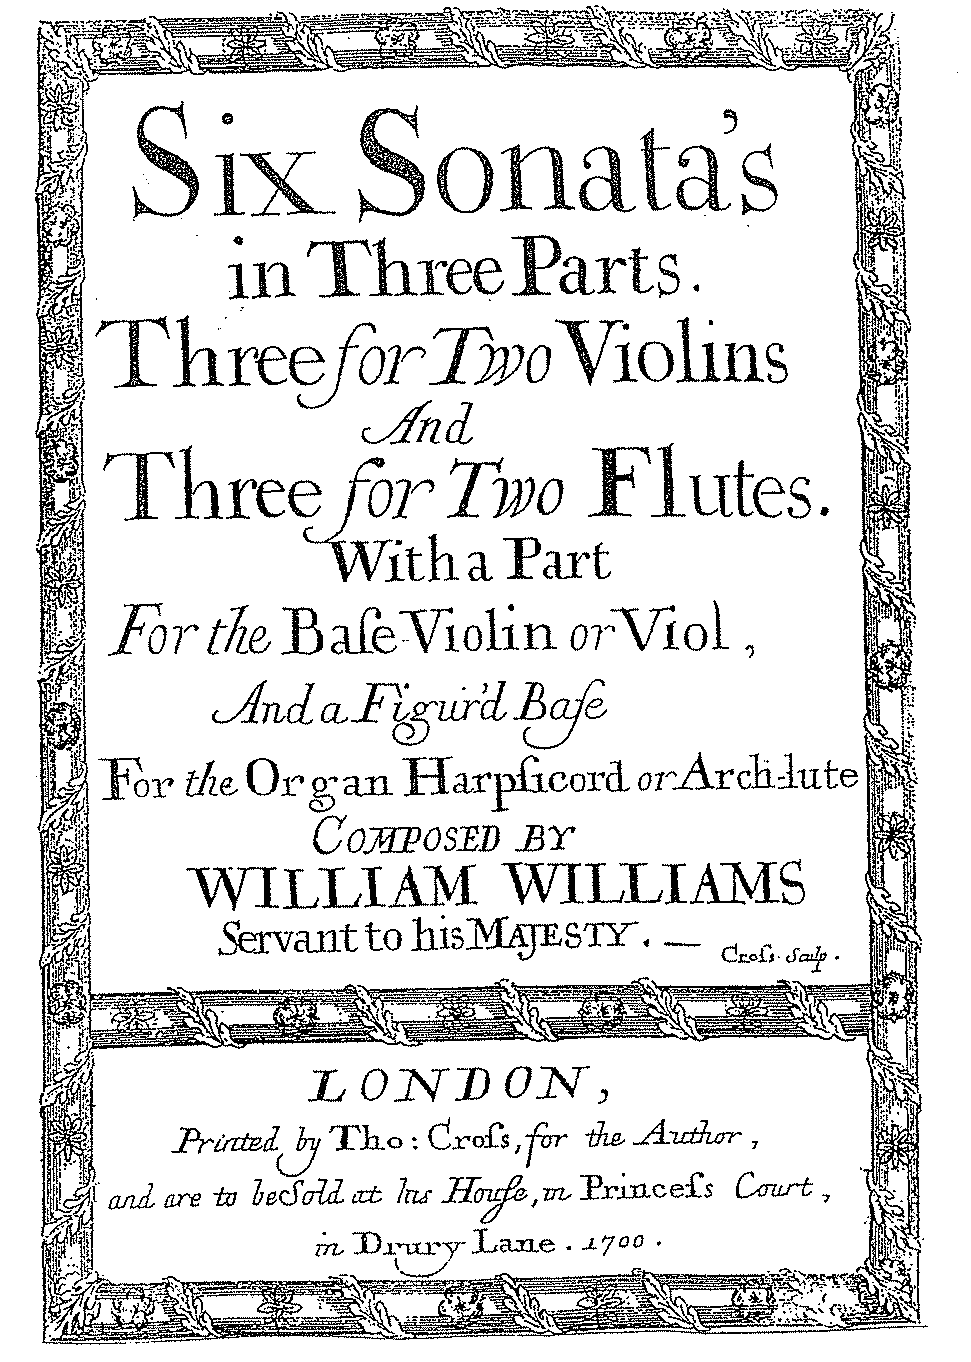 Williams title page